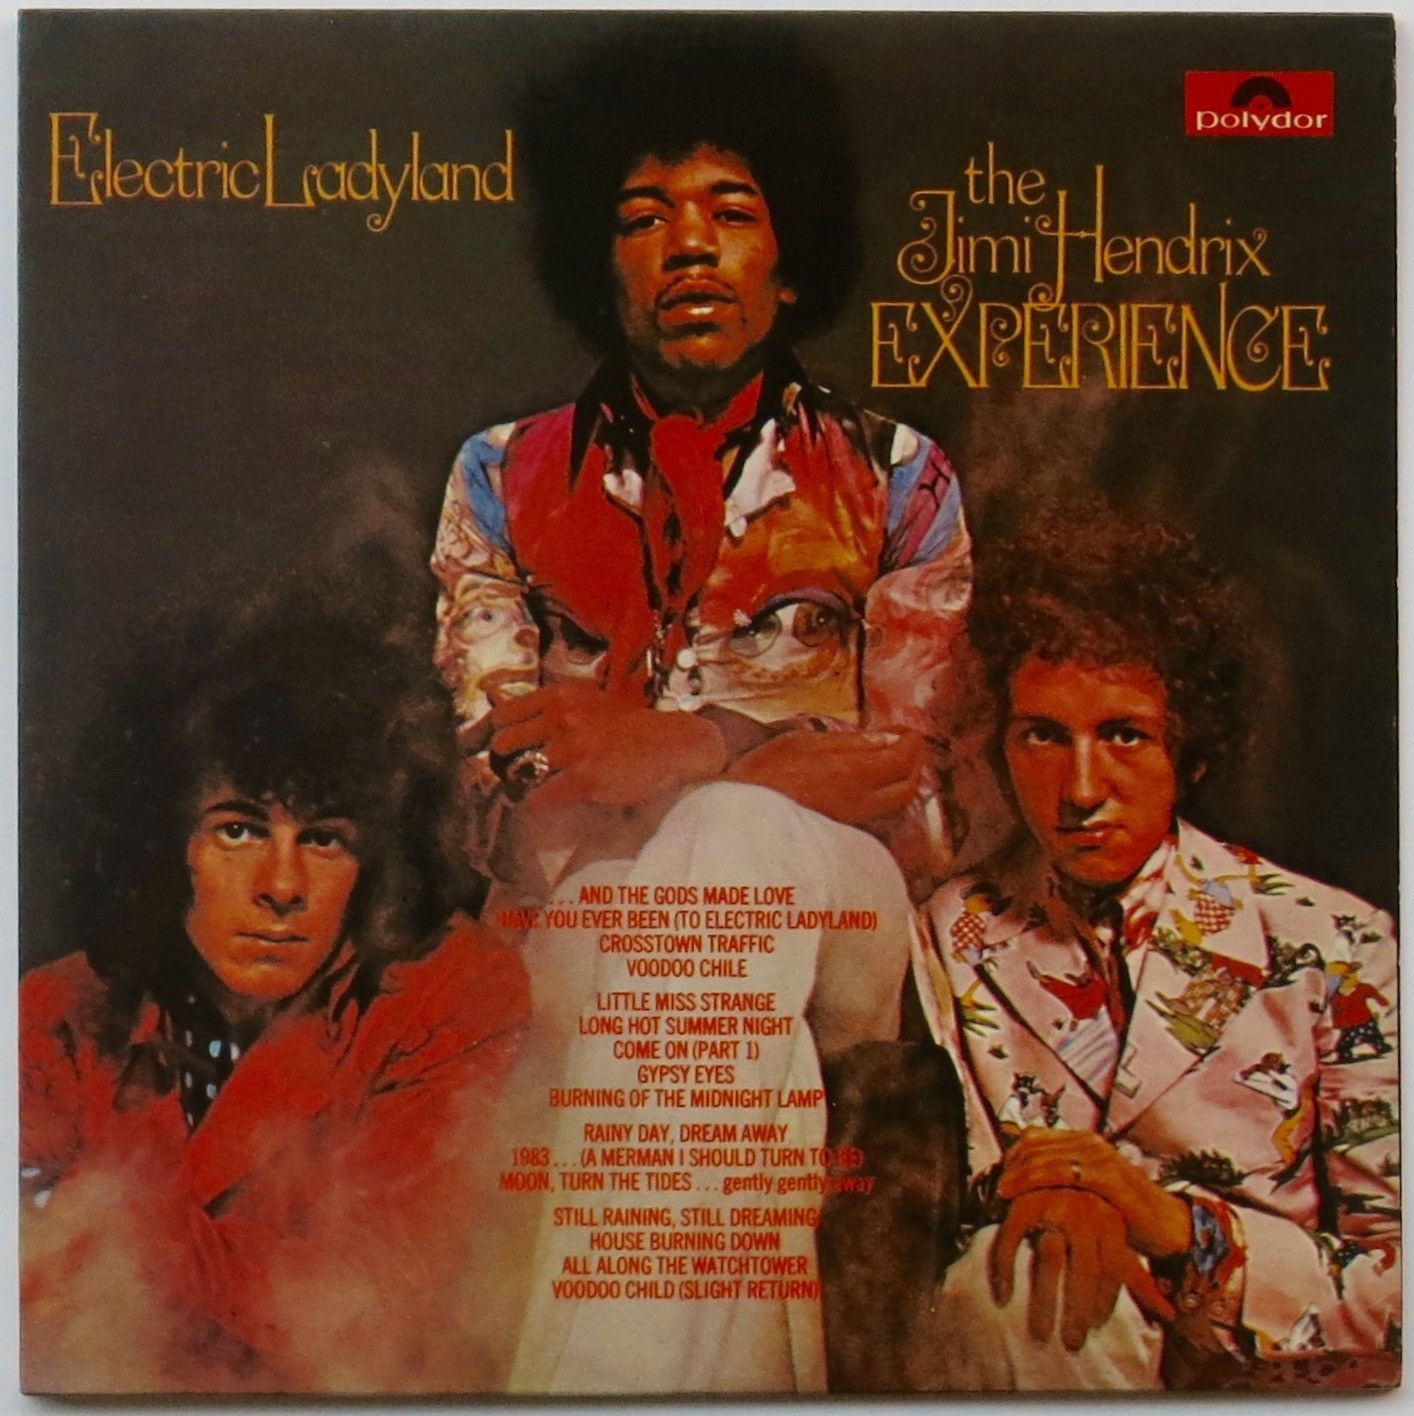 The Jimi Hendrix Experience Mint Early Italian Pressing Electric Ladyland Double Album